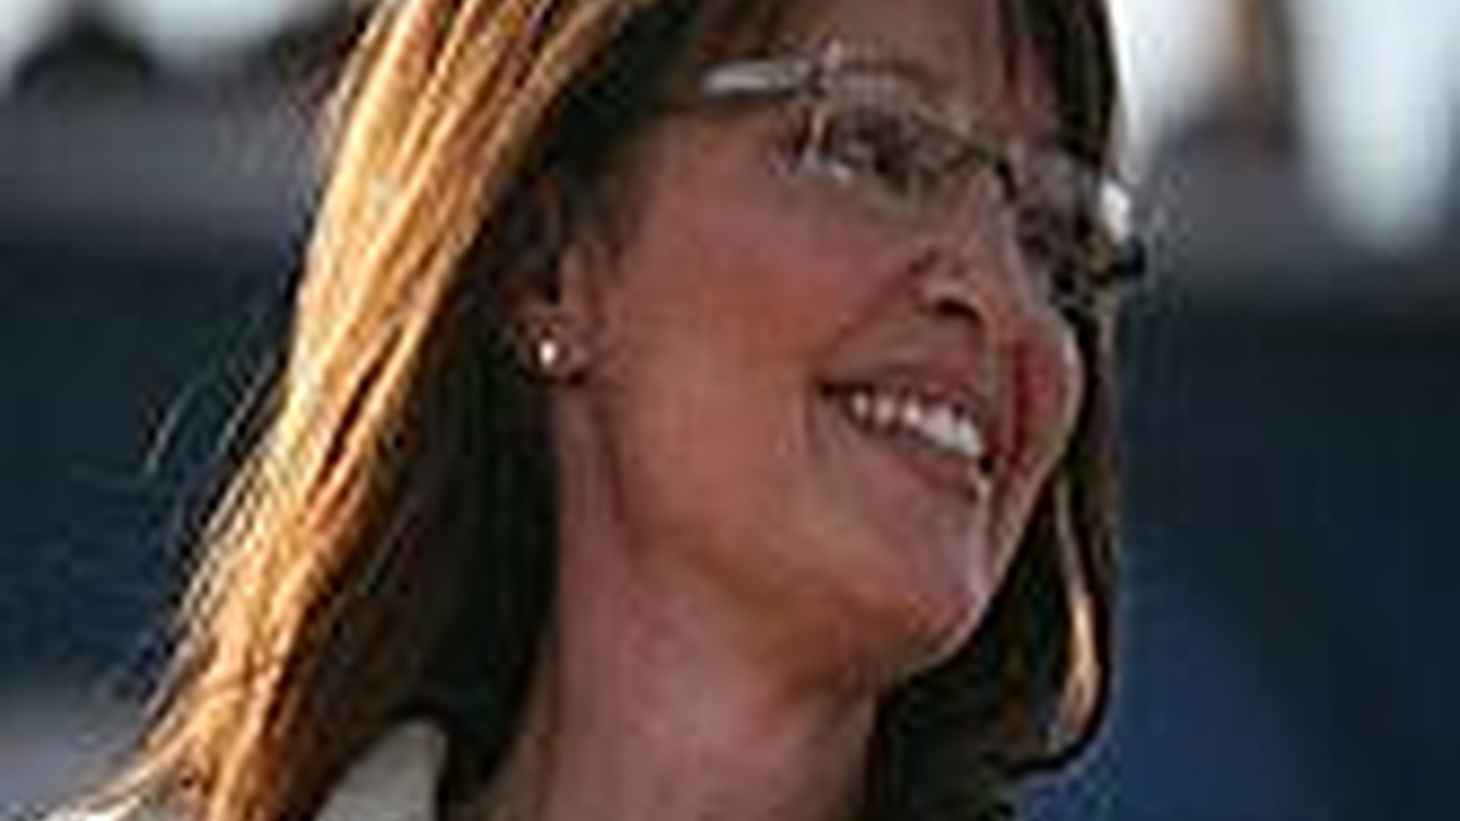 There's just no denying that the choice of Governor Sarah Palin has completely rewritten the script for the race for president...